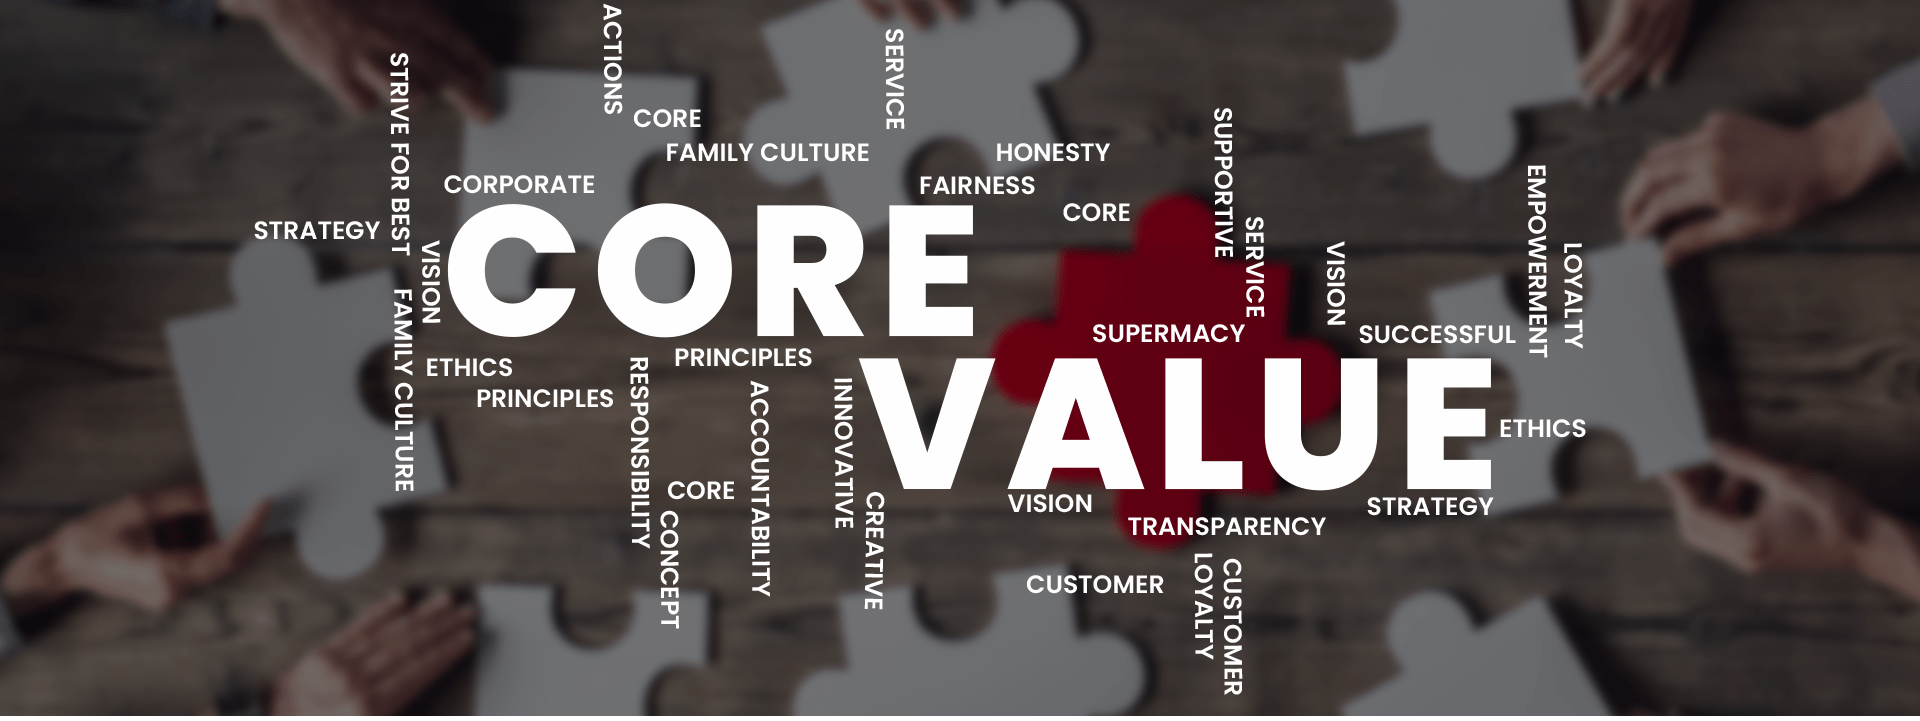 core-values02